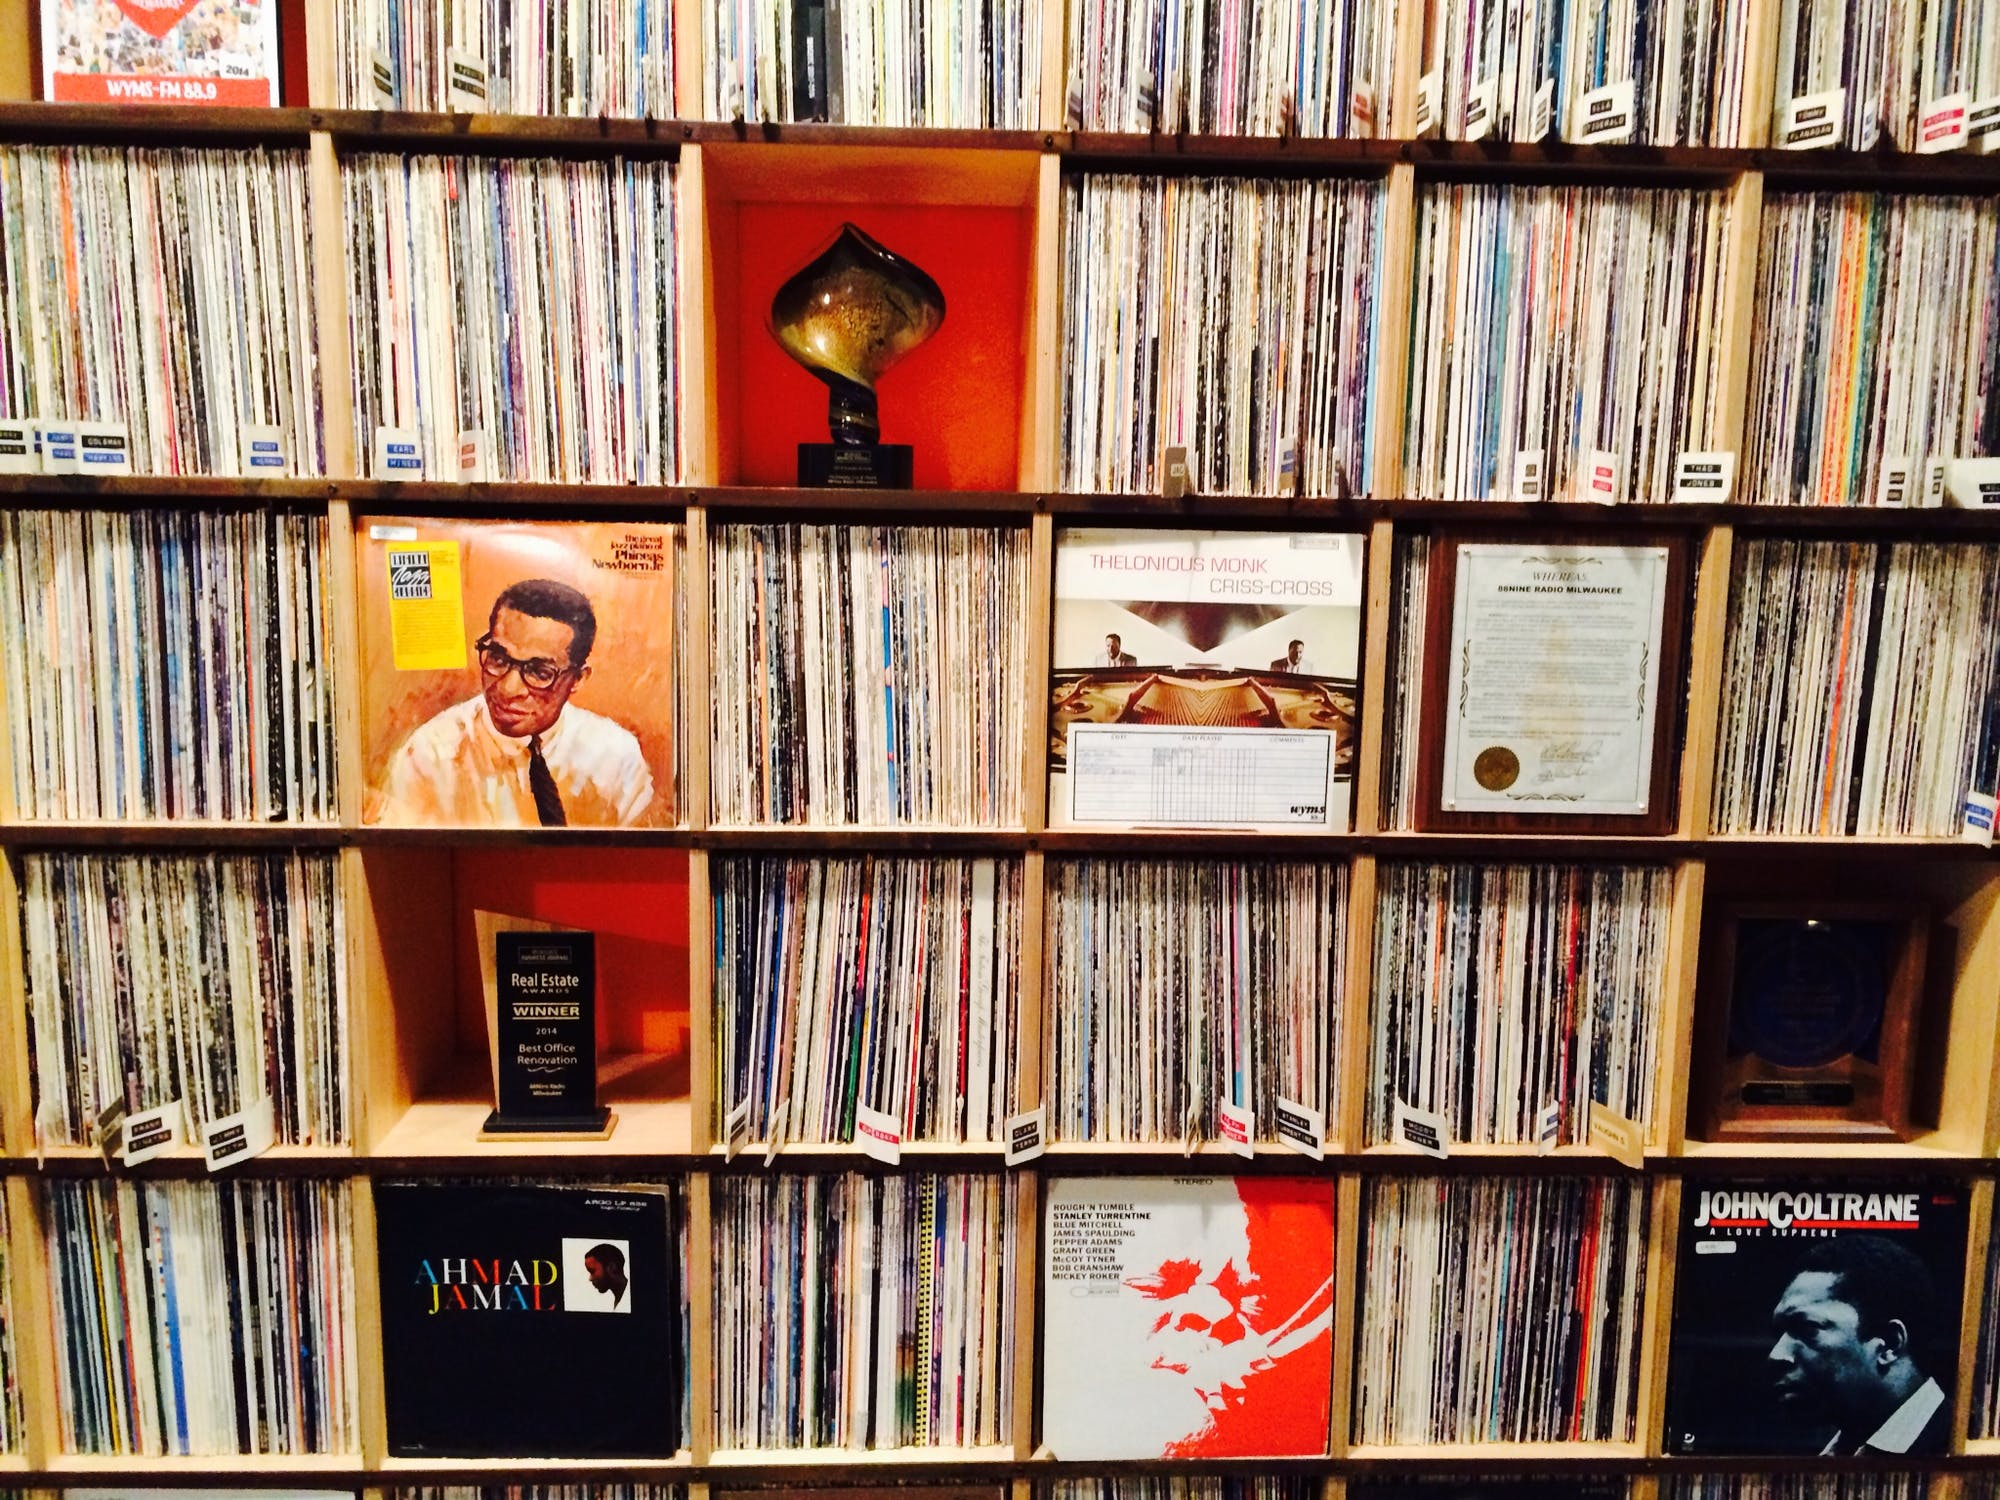 8mm Records - Record Store Image